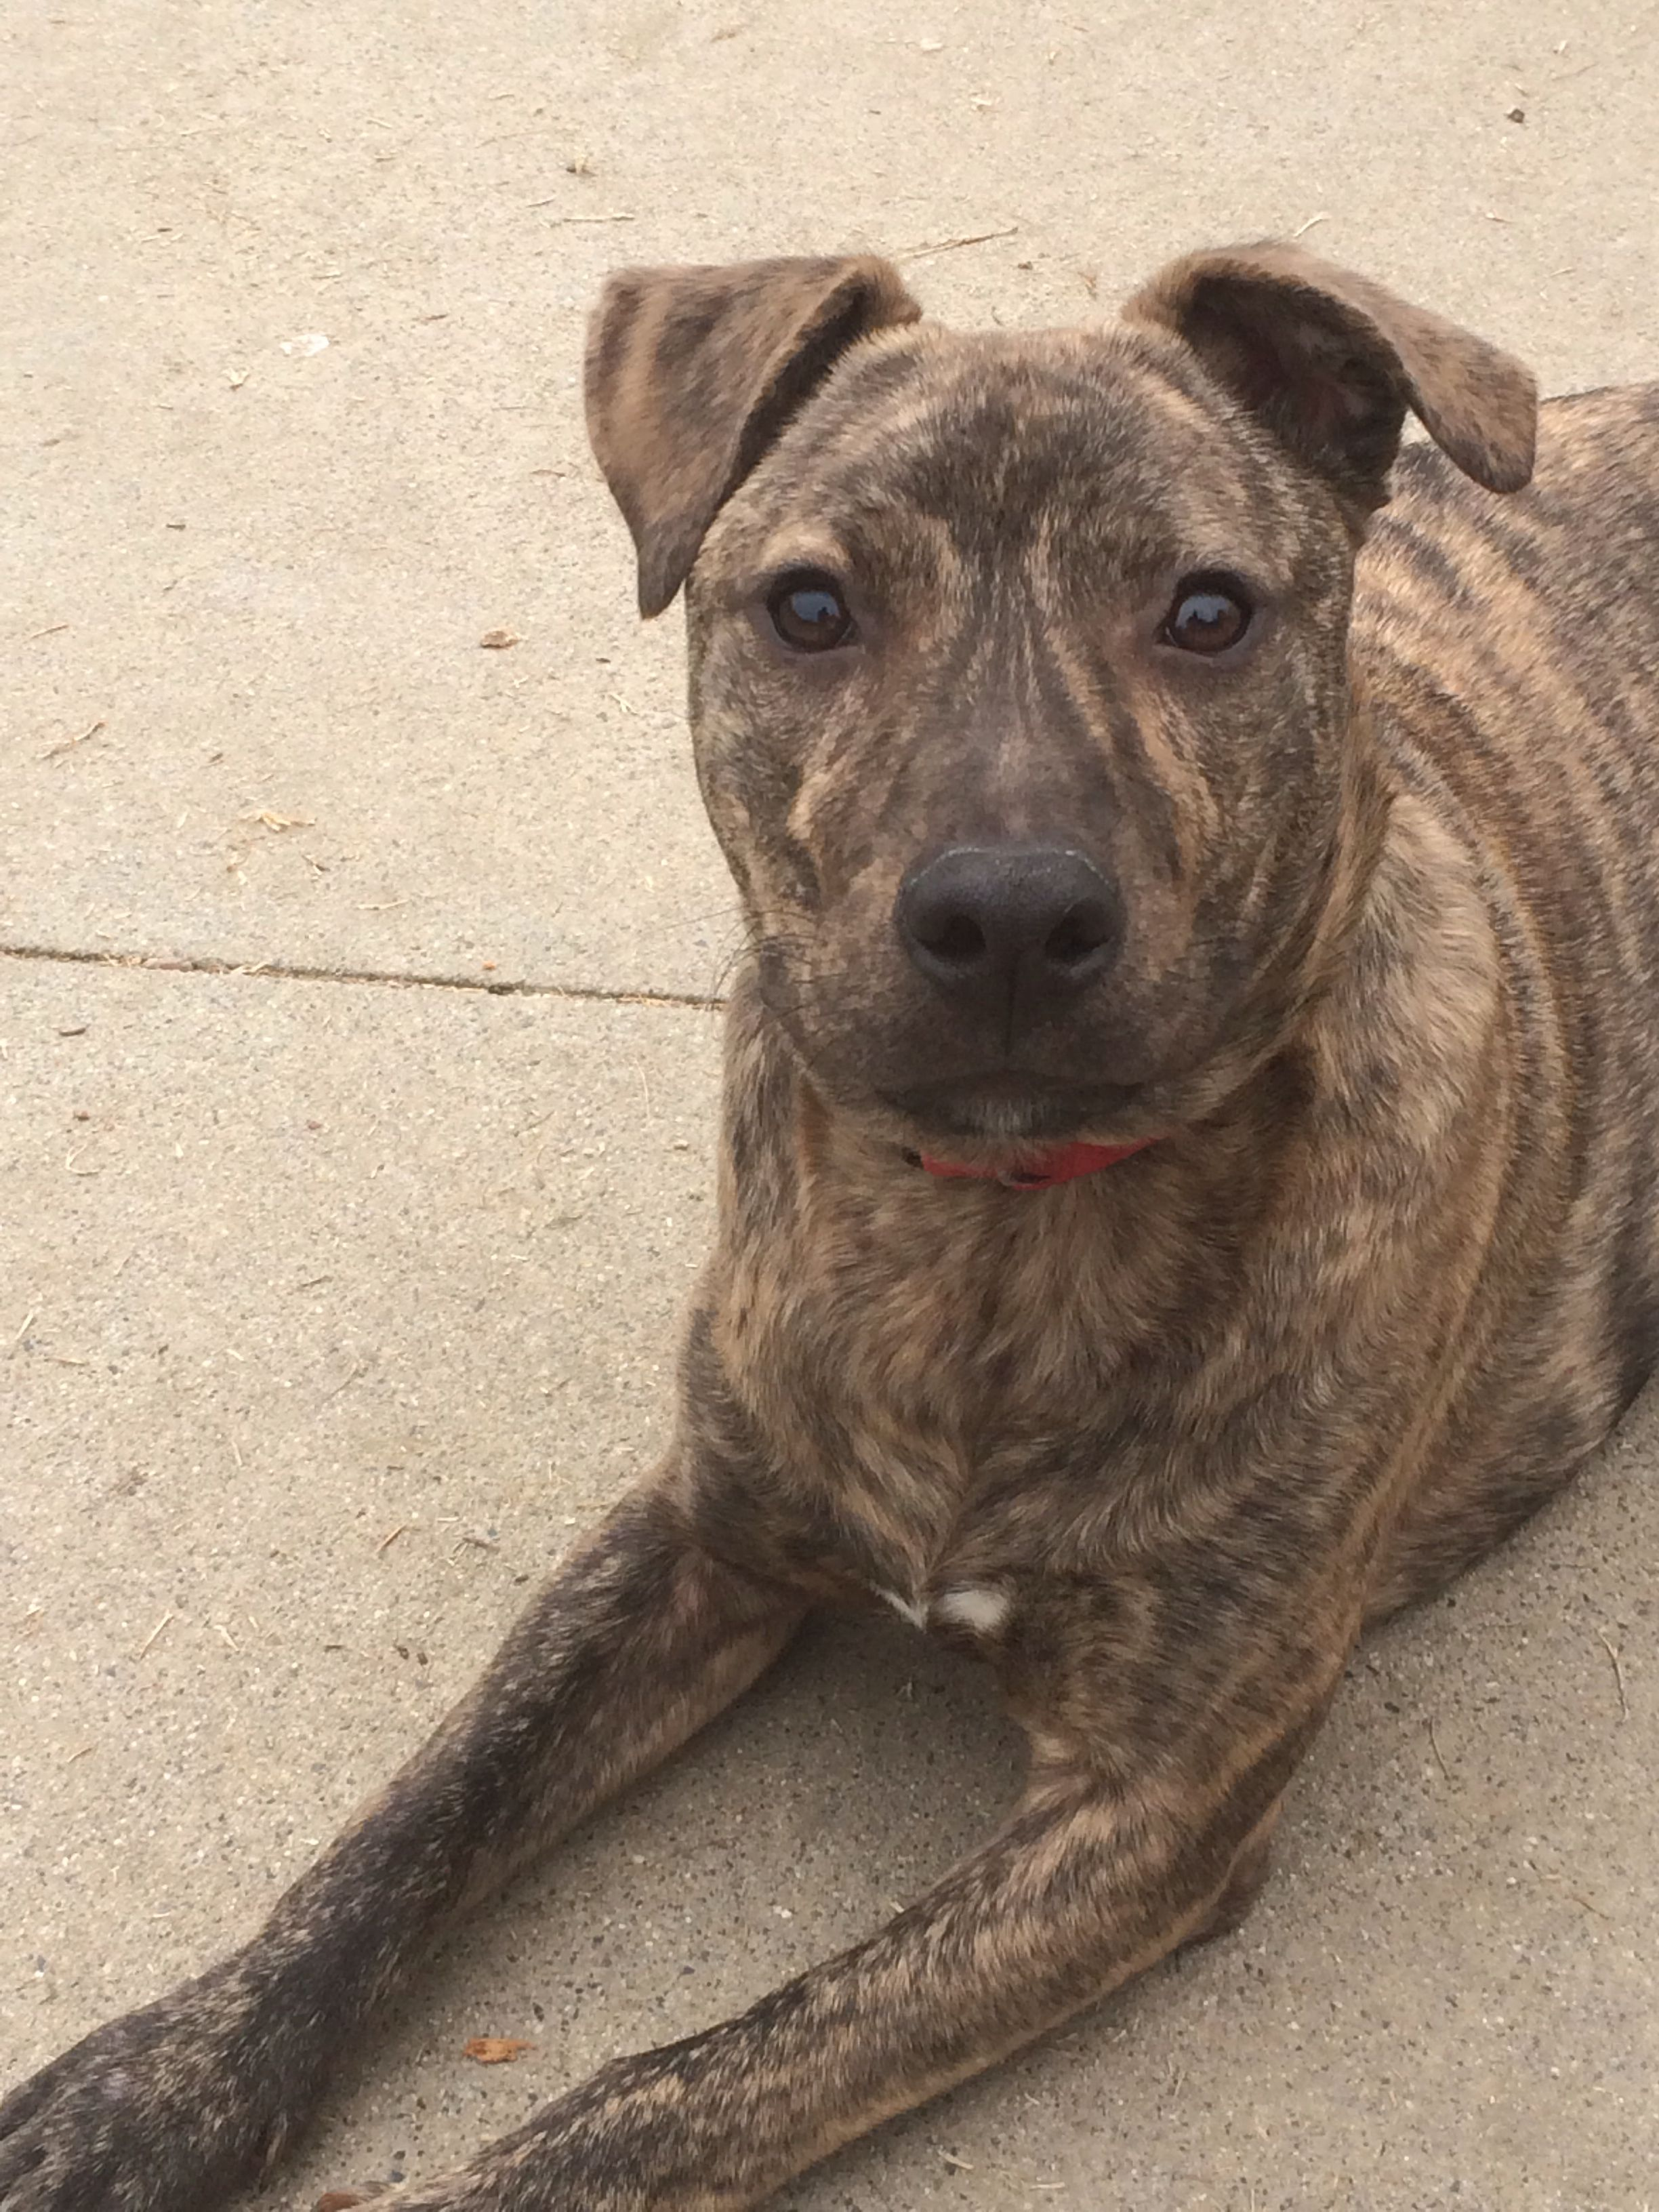 Congo is an adorable mountain cur puppy who is up for